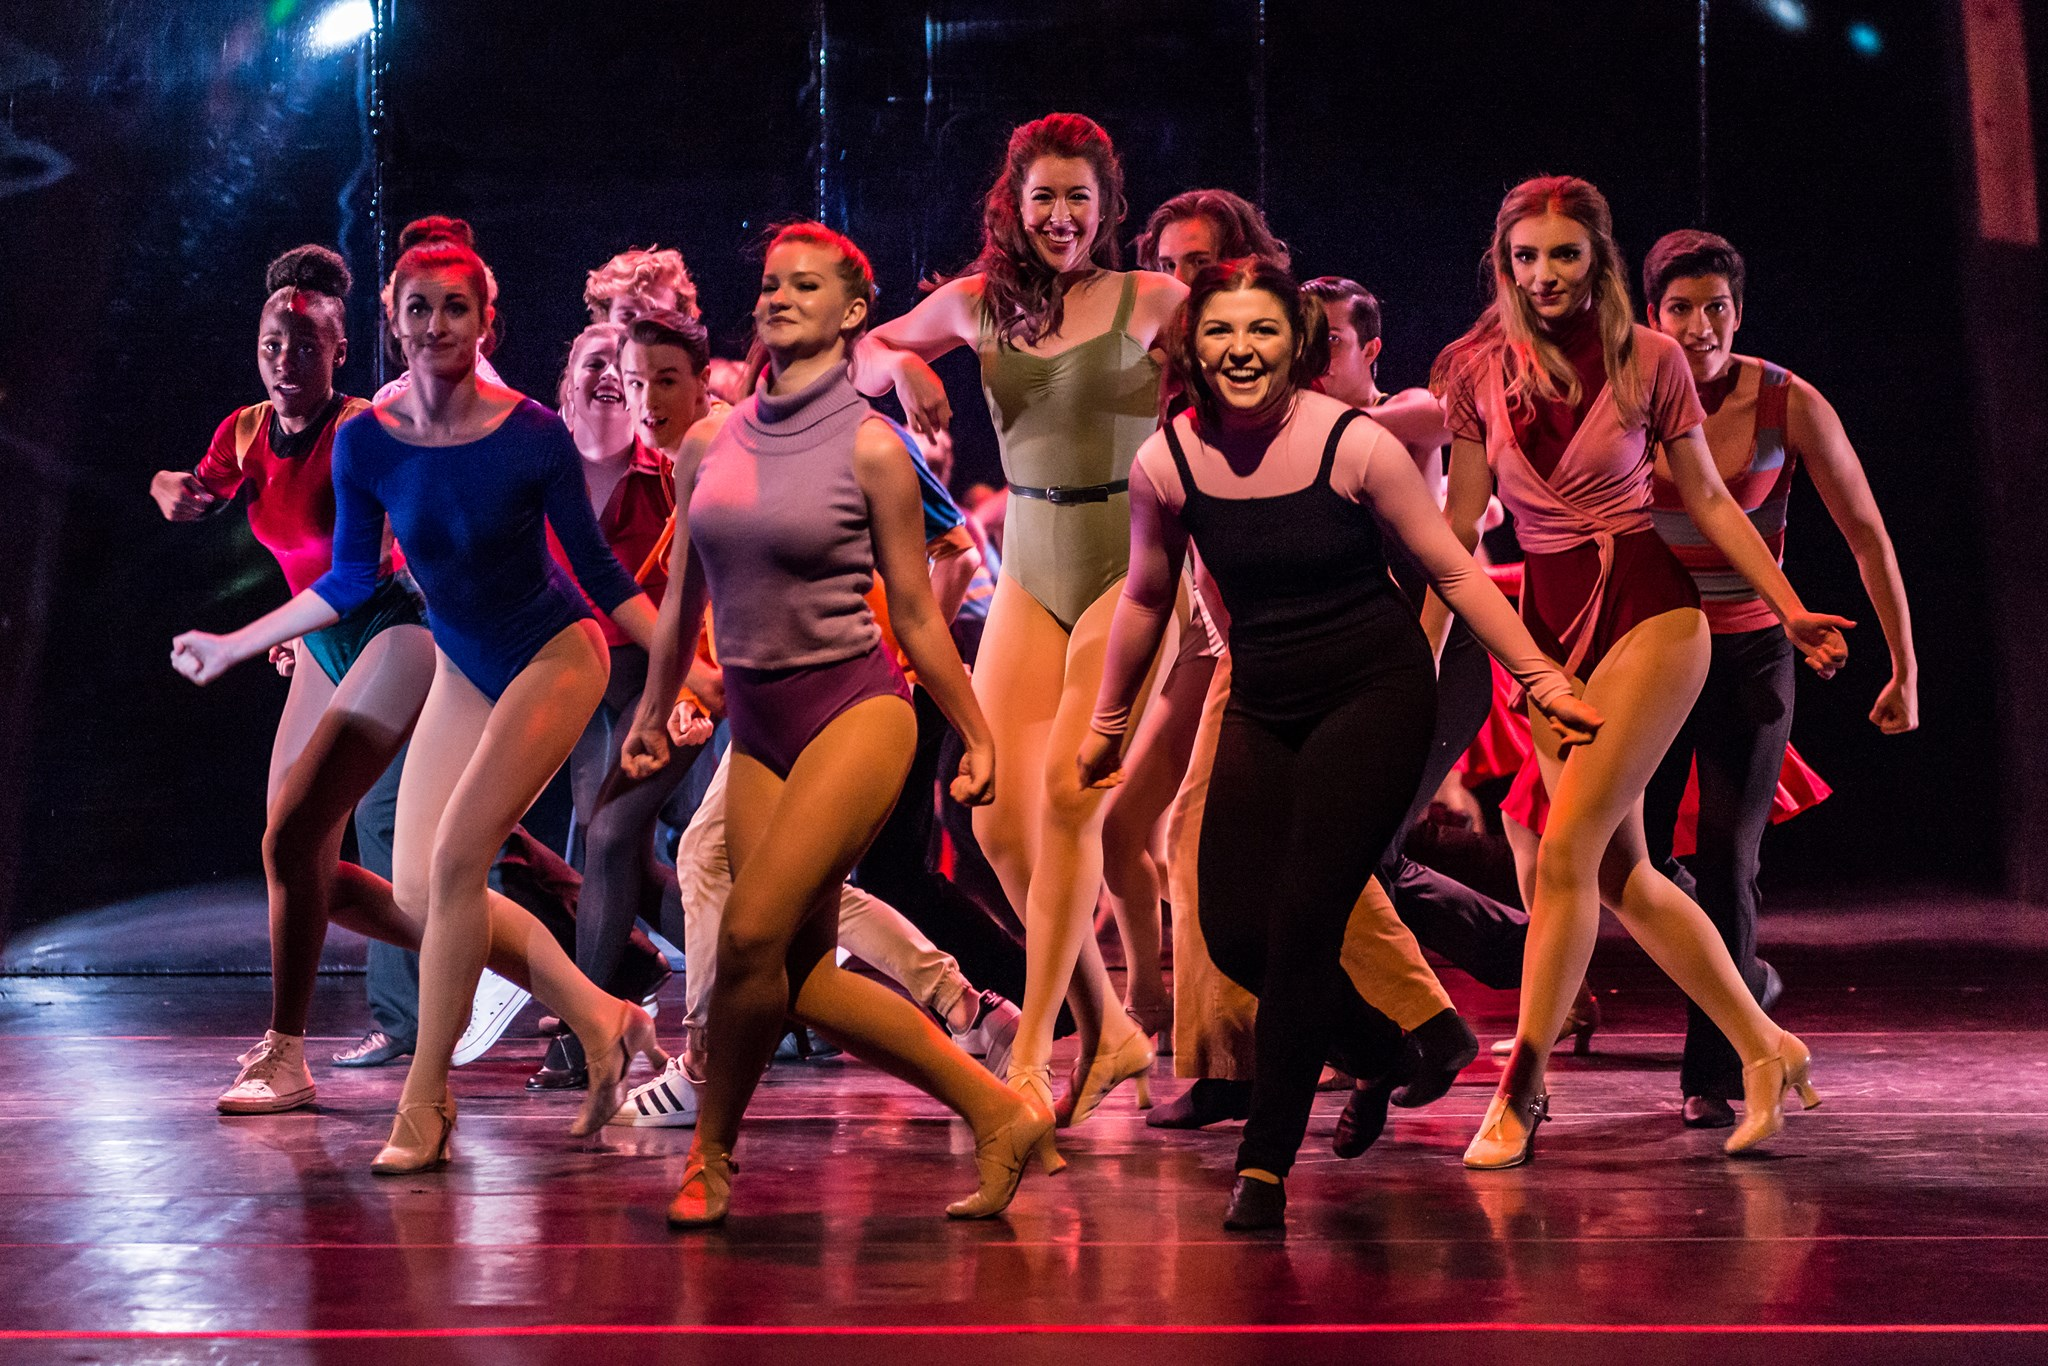 Regional Roundup: Top New Features This Week Around Our BroadwayWorld 9/29 - BRIDGES, A CHORUS LINE, and More!